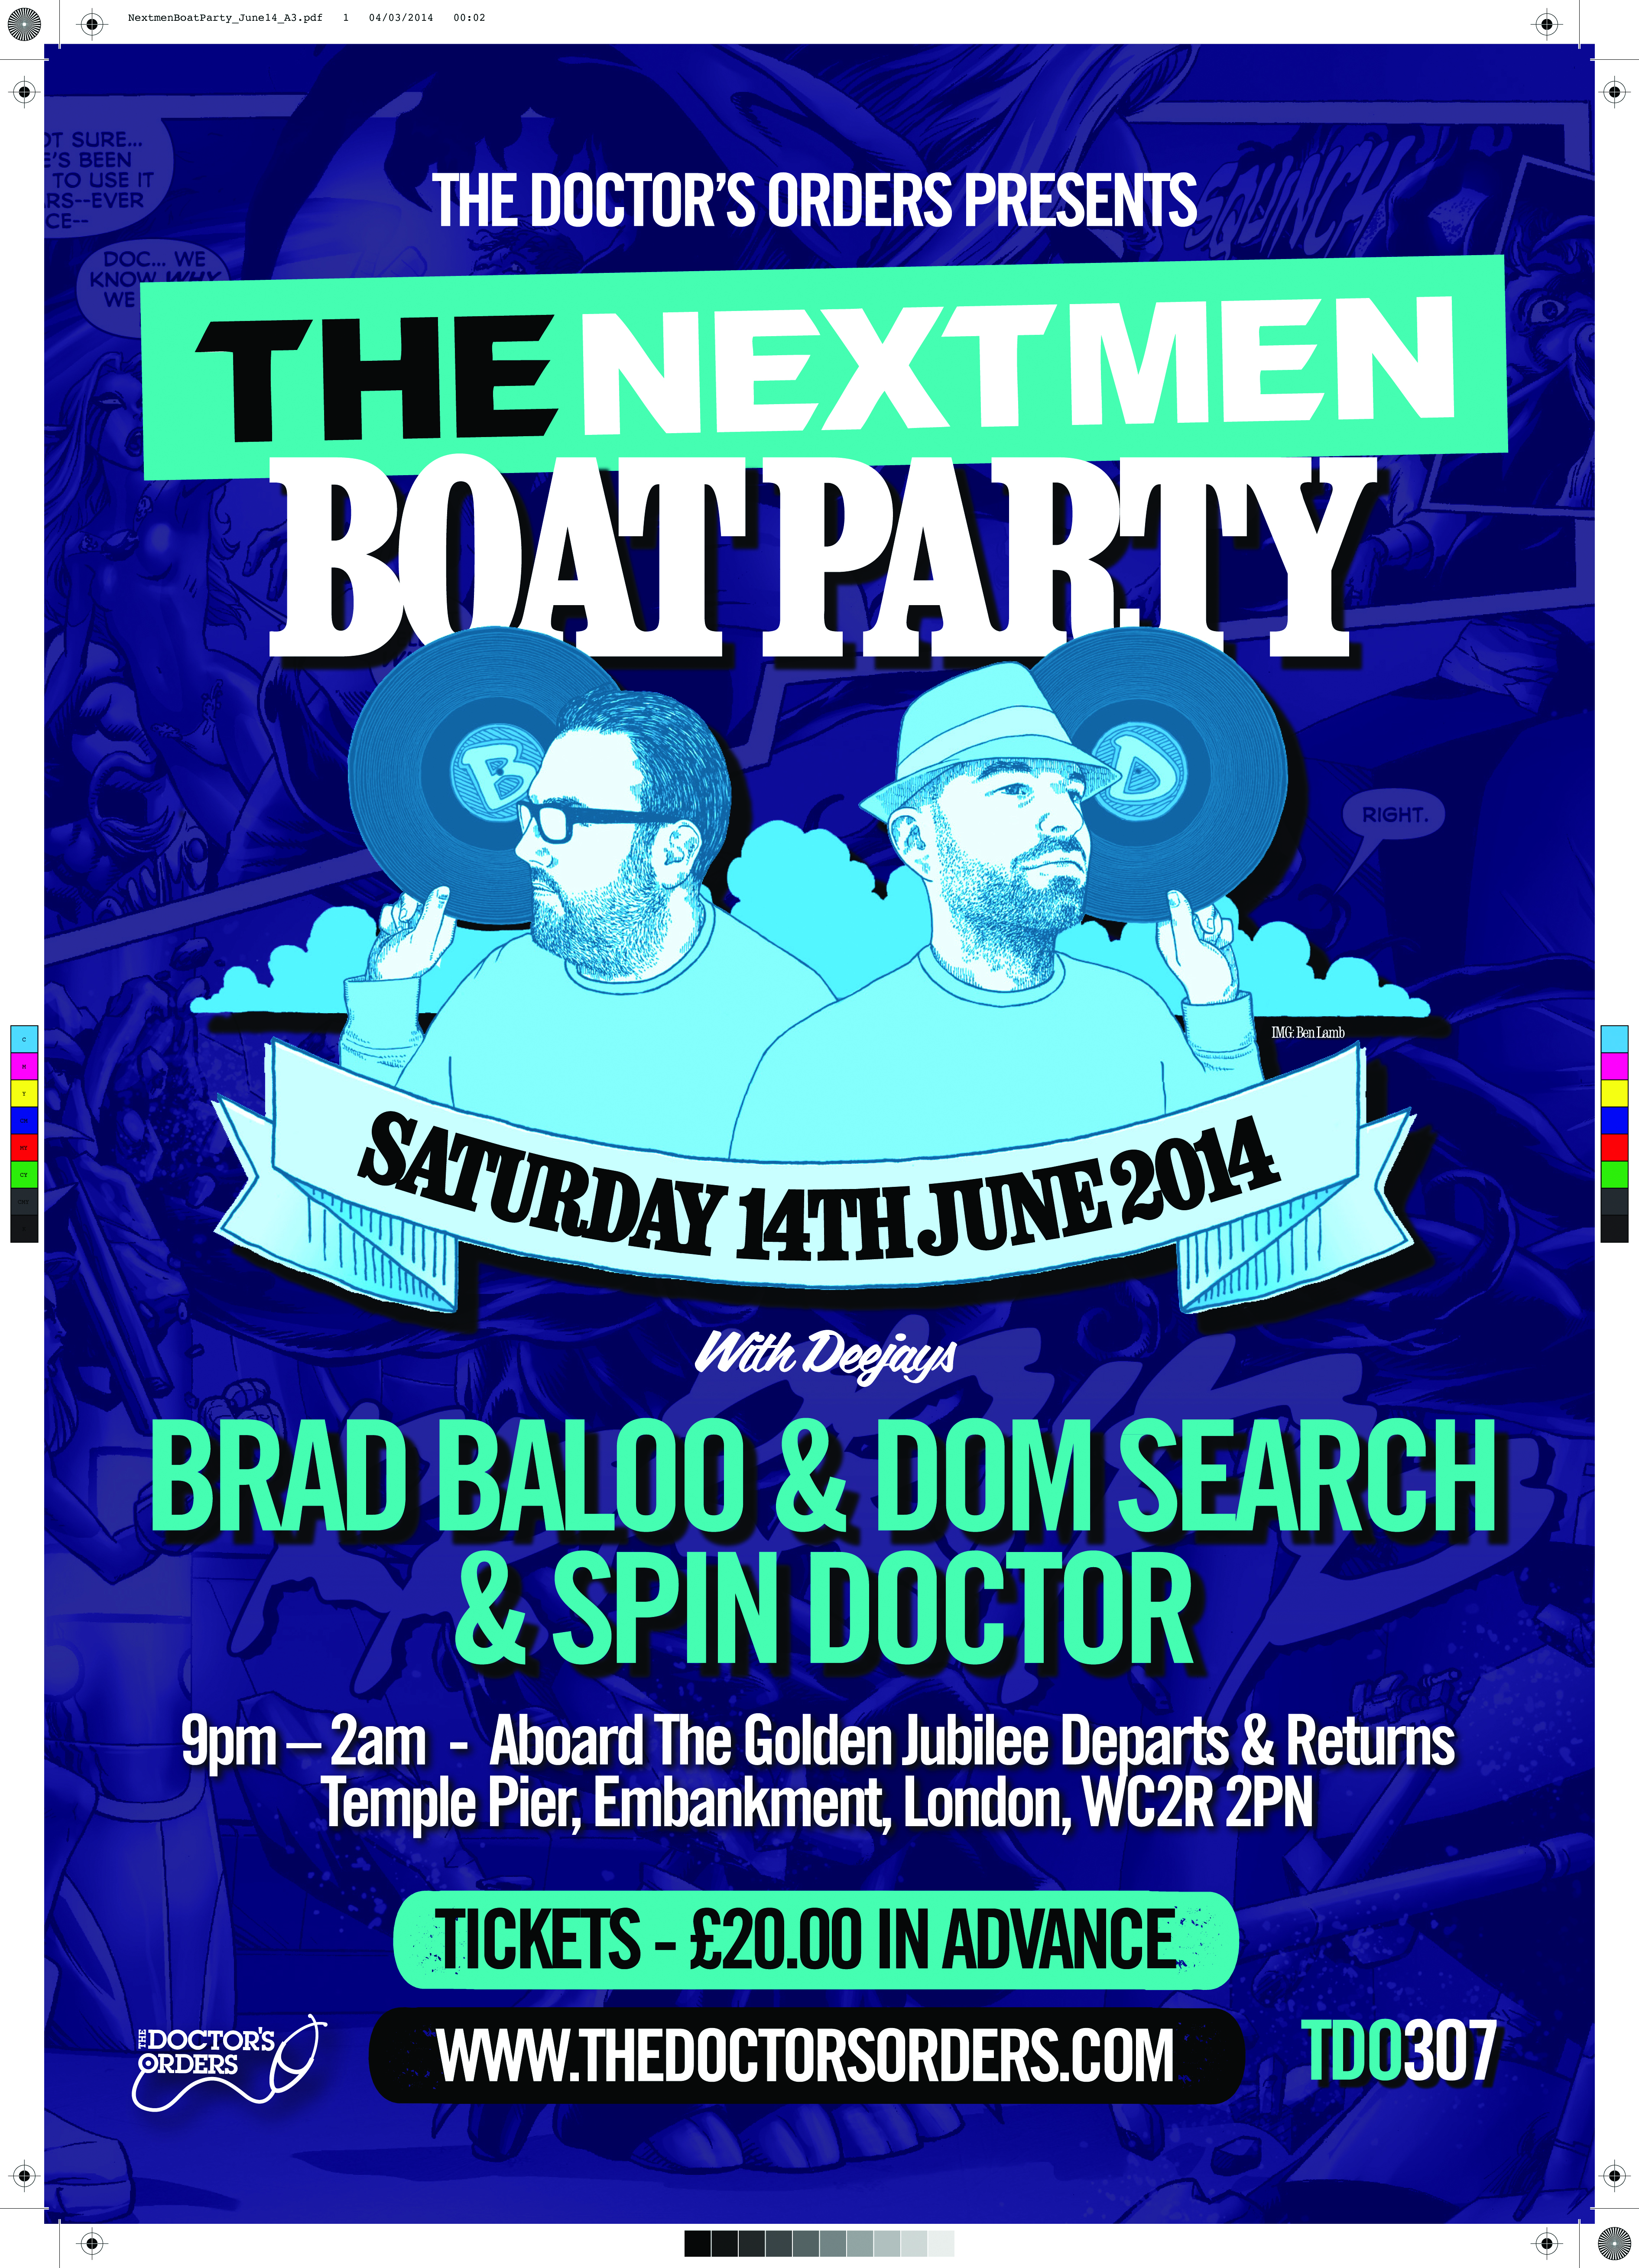 NextmenBoatParty_May2012_A3